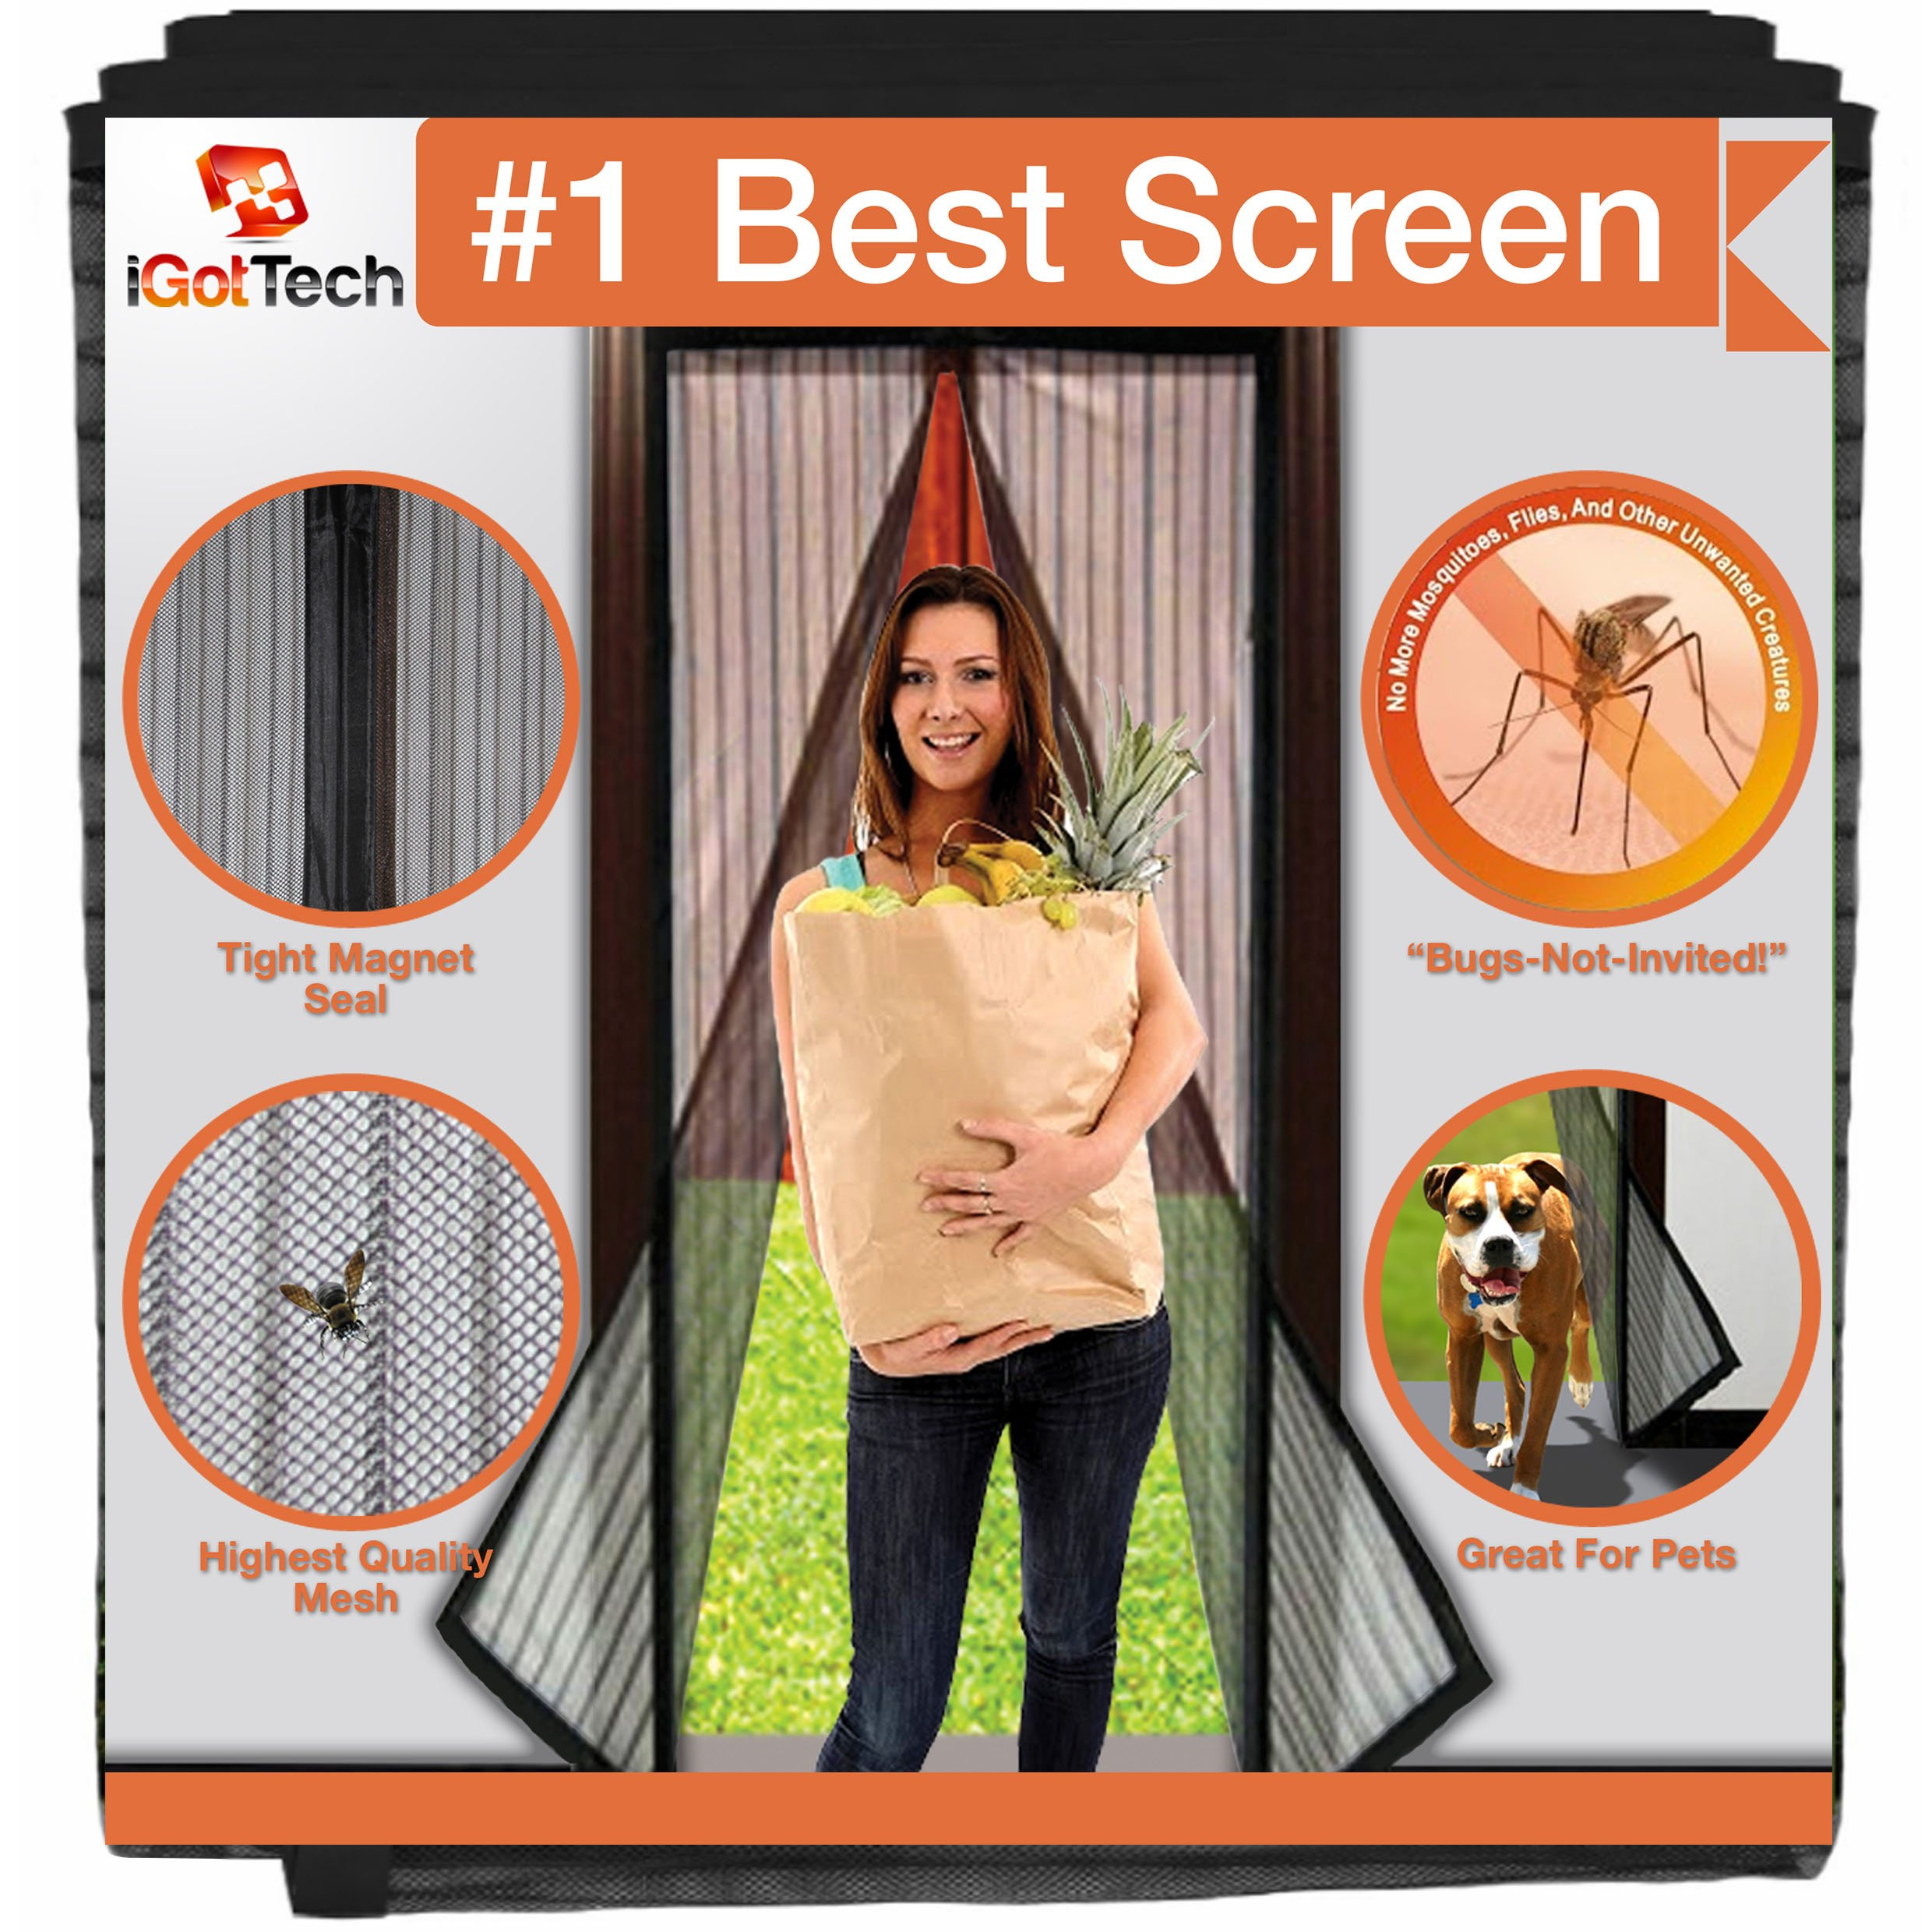 Magnetic Screen Door, Full Frame Seal. Fits Door Openings up to 34''x82'' MAX by iGotTech (Image #1)